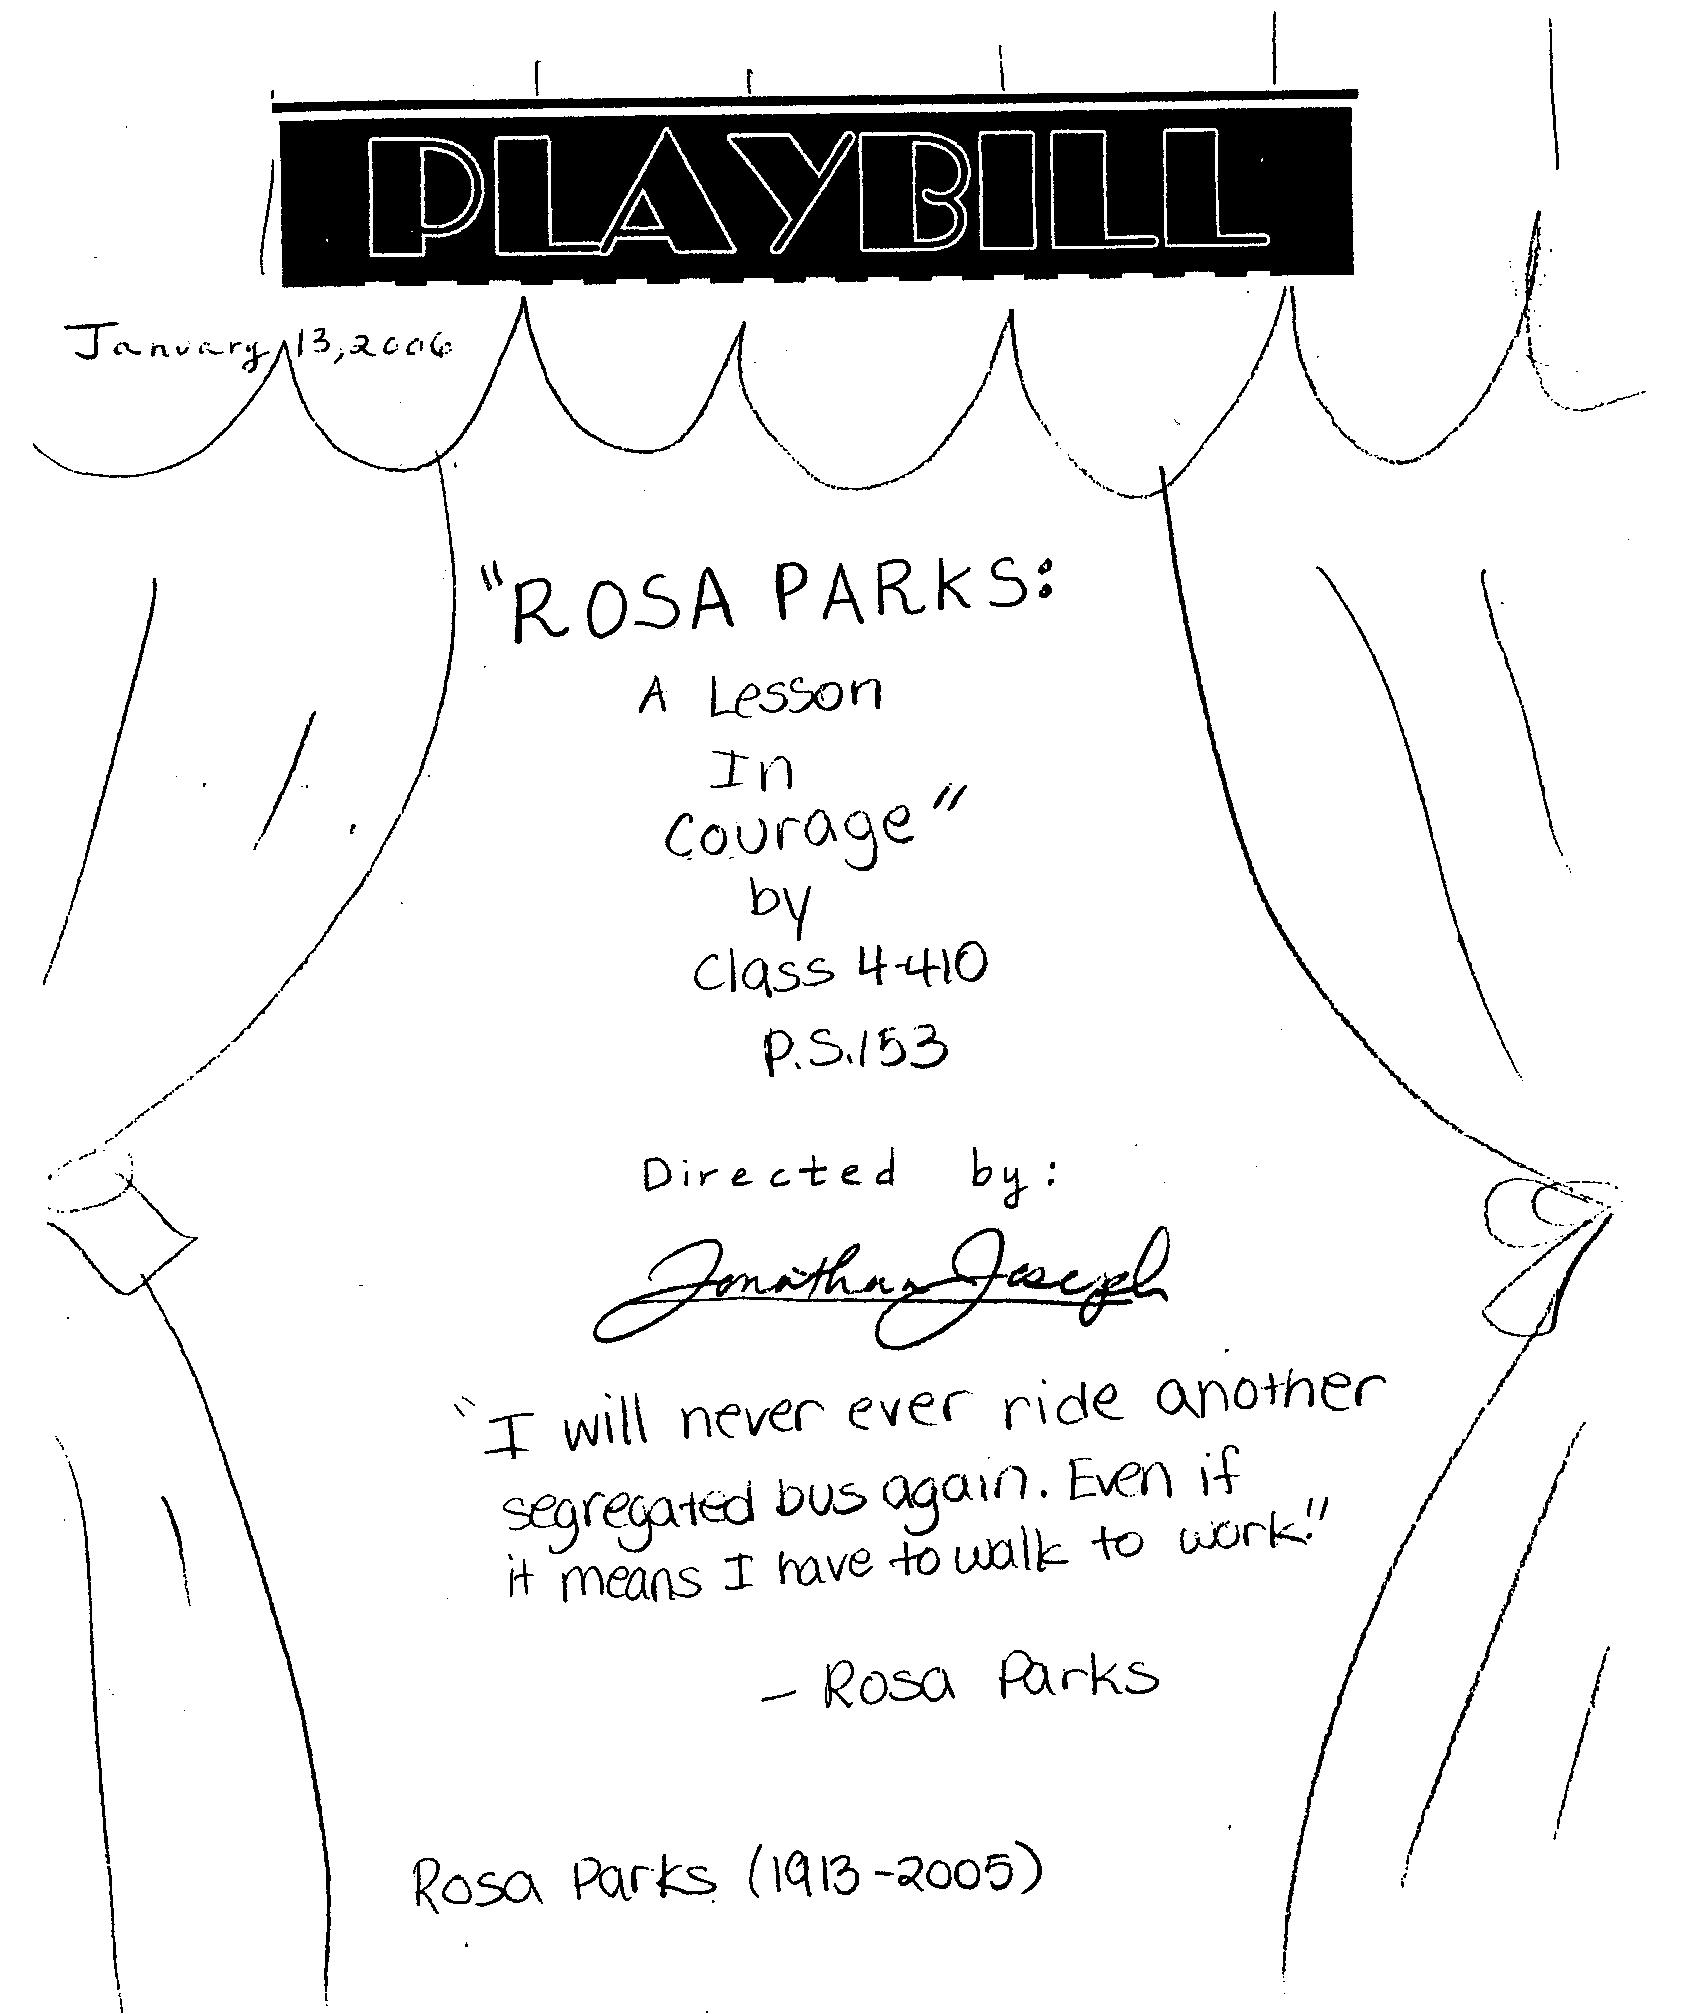 "Playbill for ""Rosa Parks: A Lesson in Courage"""